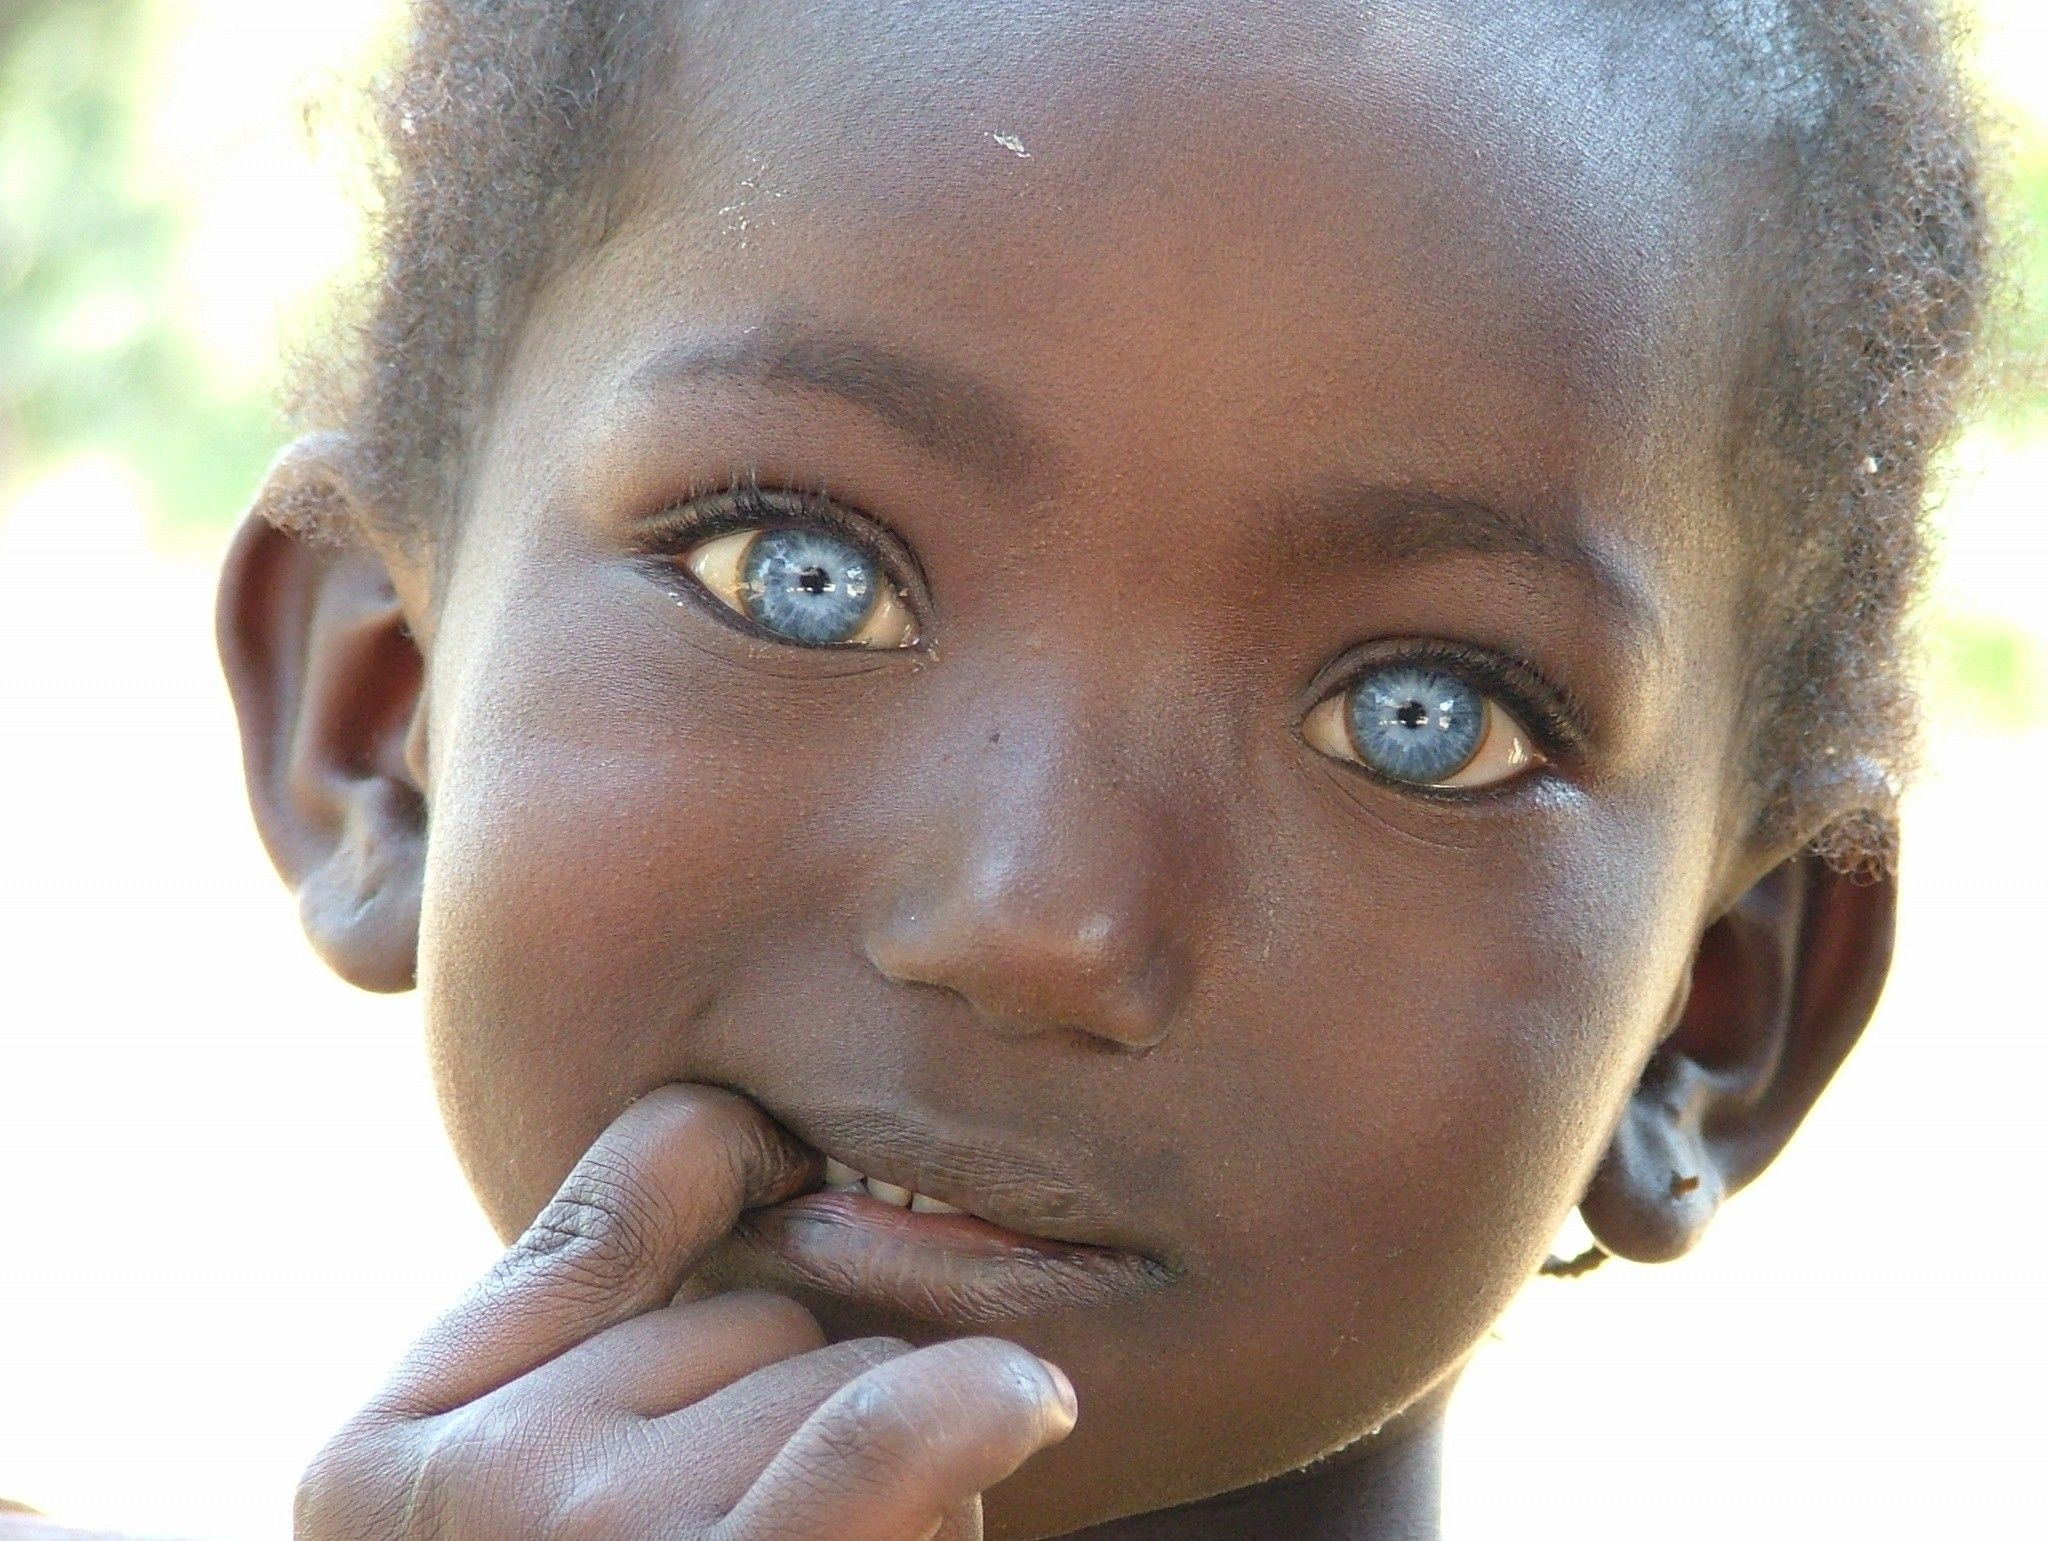 National geographic woman with blue eyes